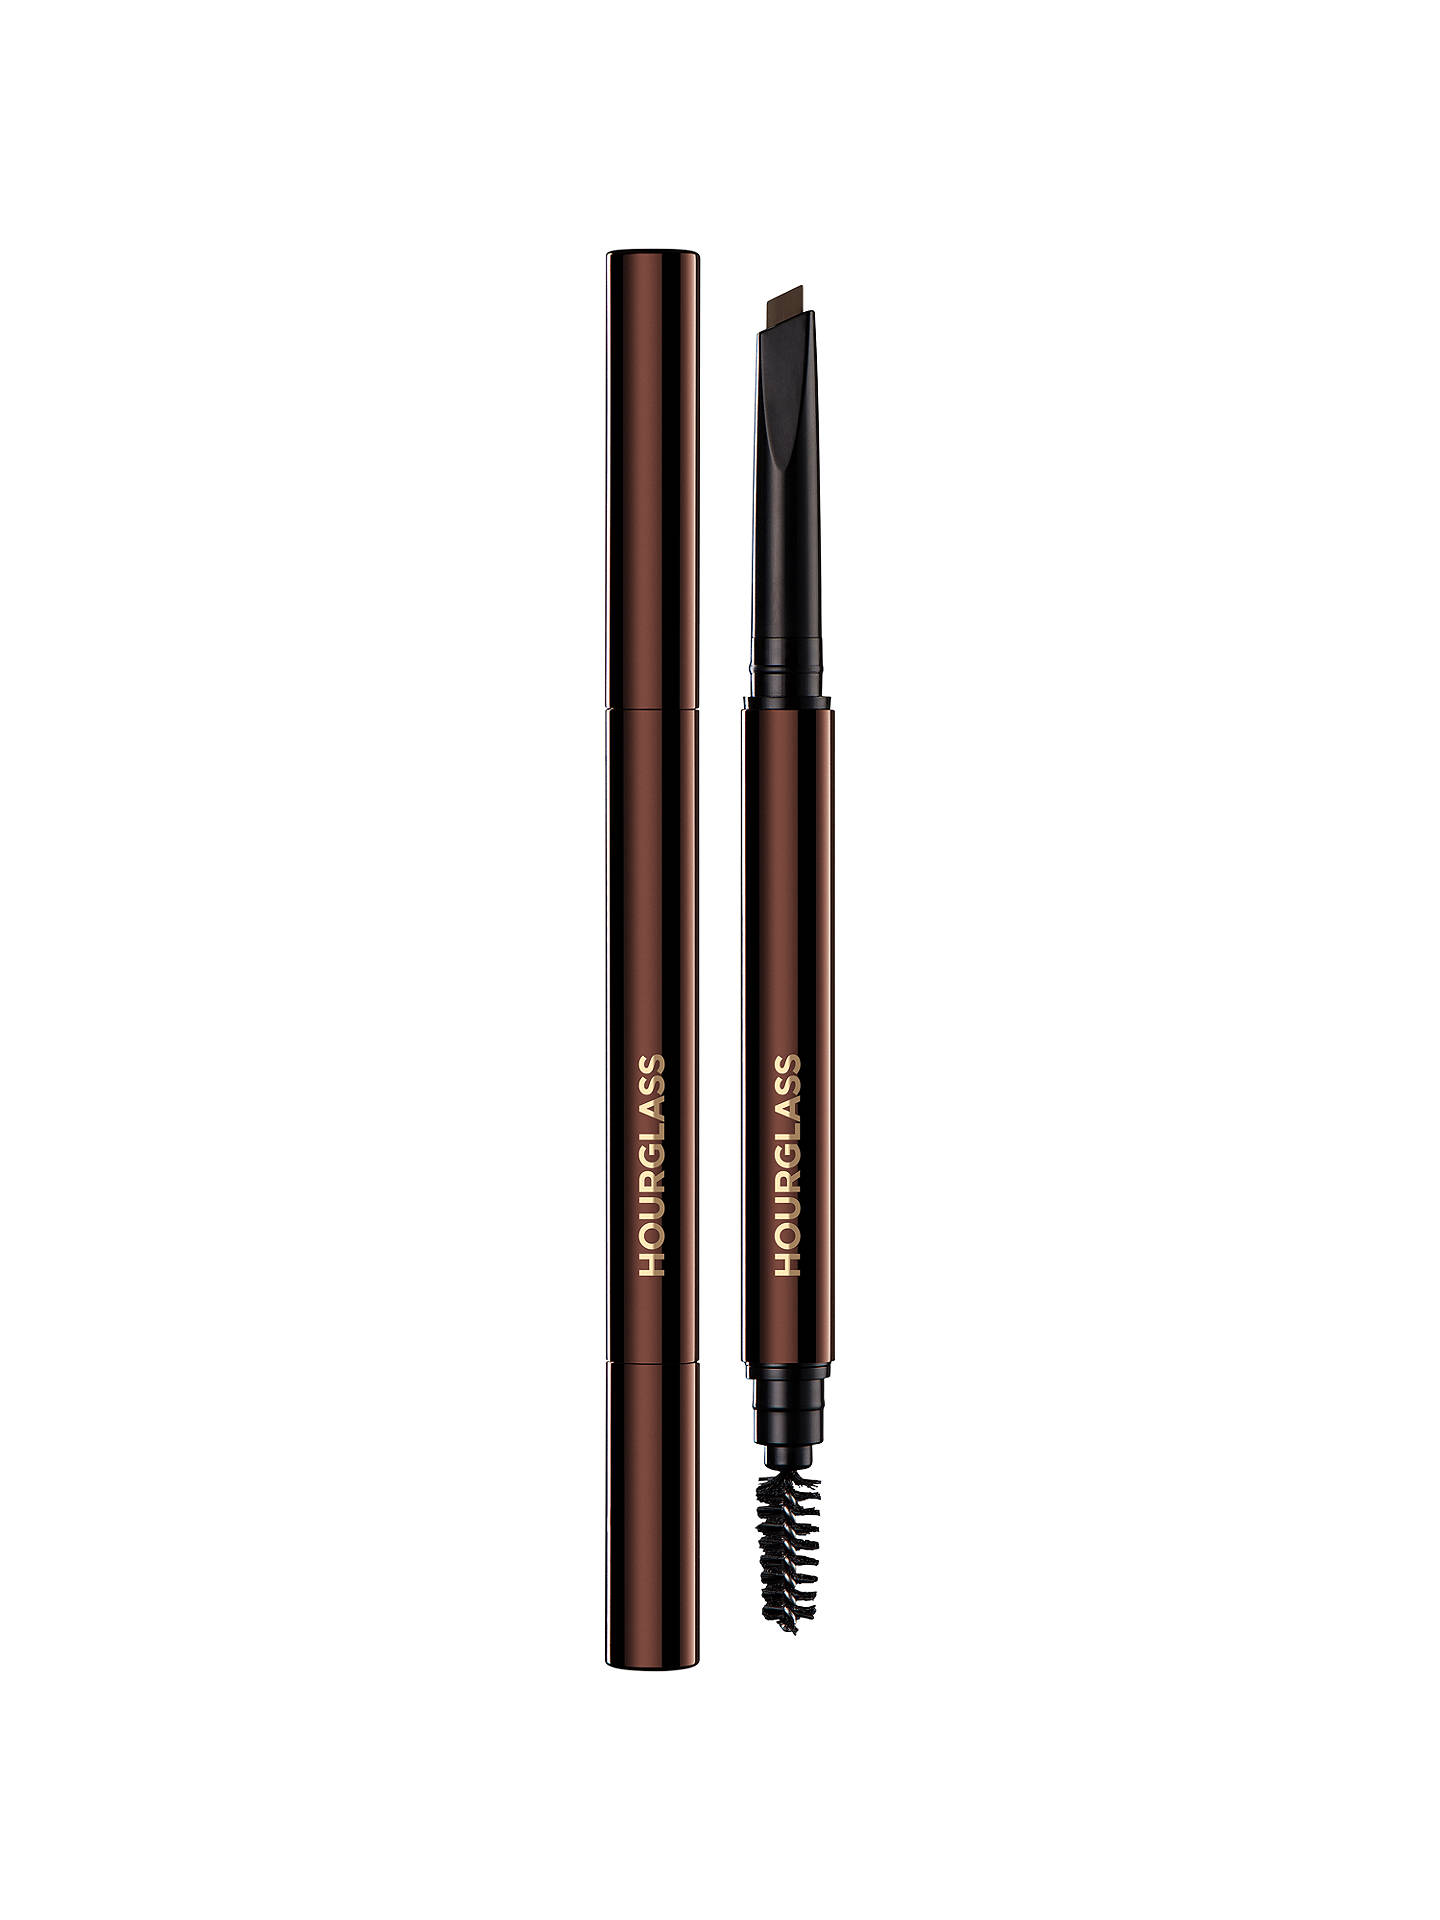 BuyHourglass Arch Brow Sculpting Pencil, Warm Brunette Online at johnlewis.com